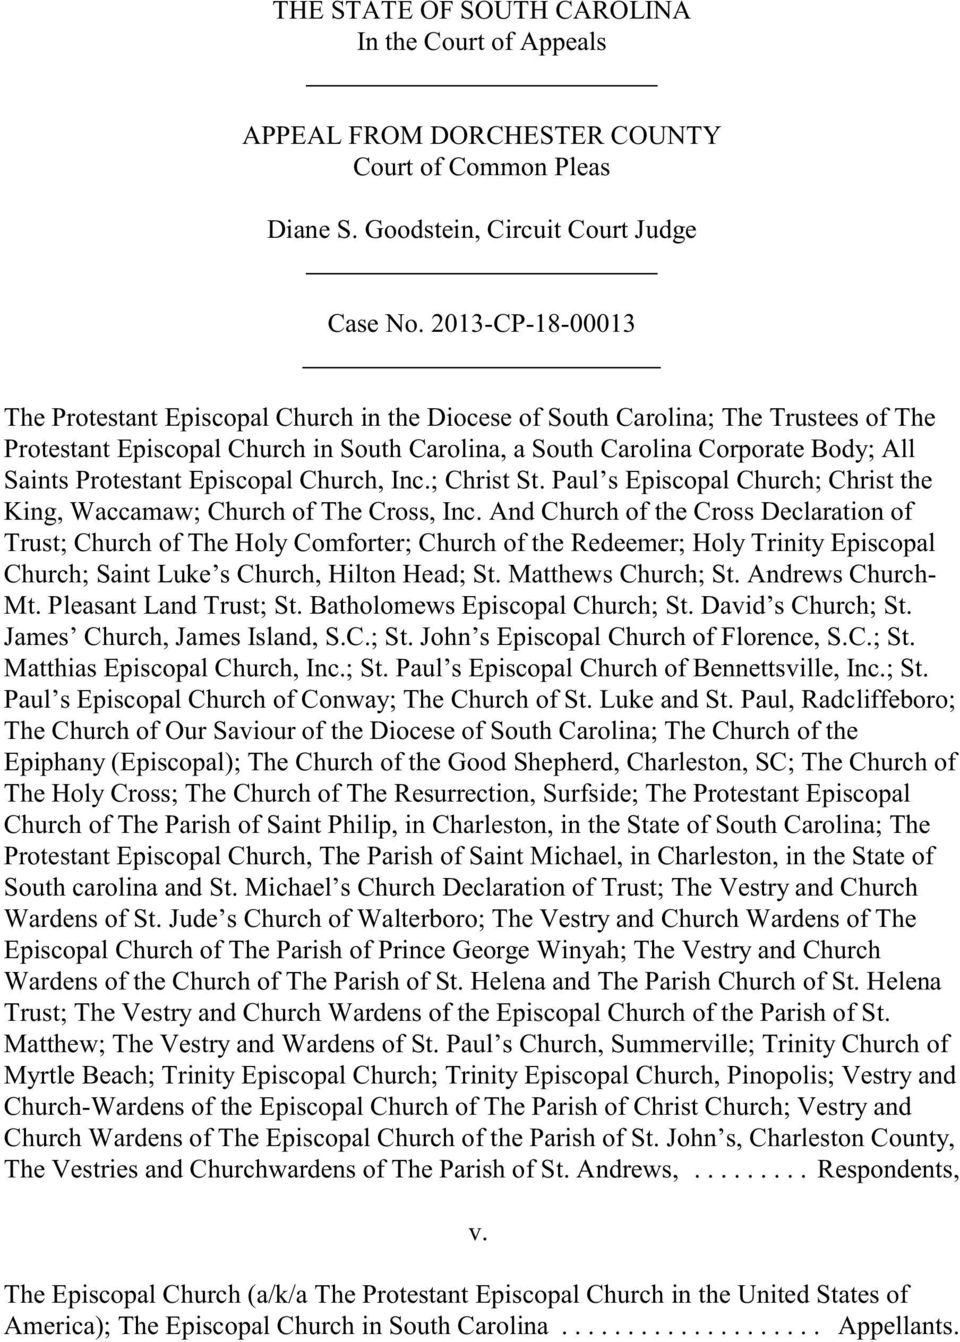 THE STATE OF SOUTH CAROLINA In the Court of Appeals  APPEAL